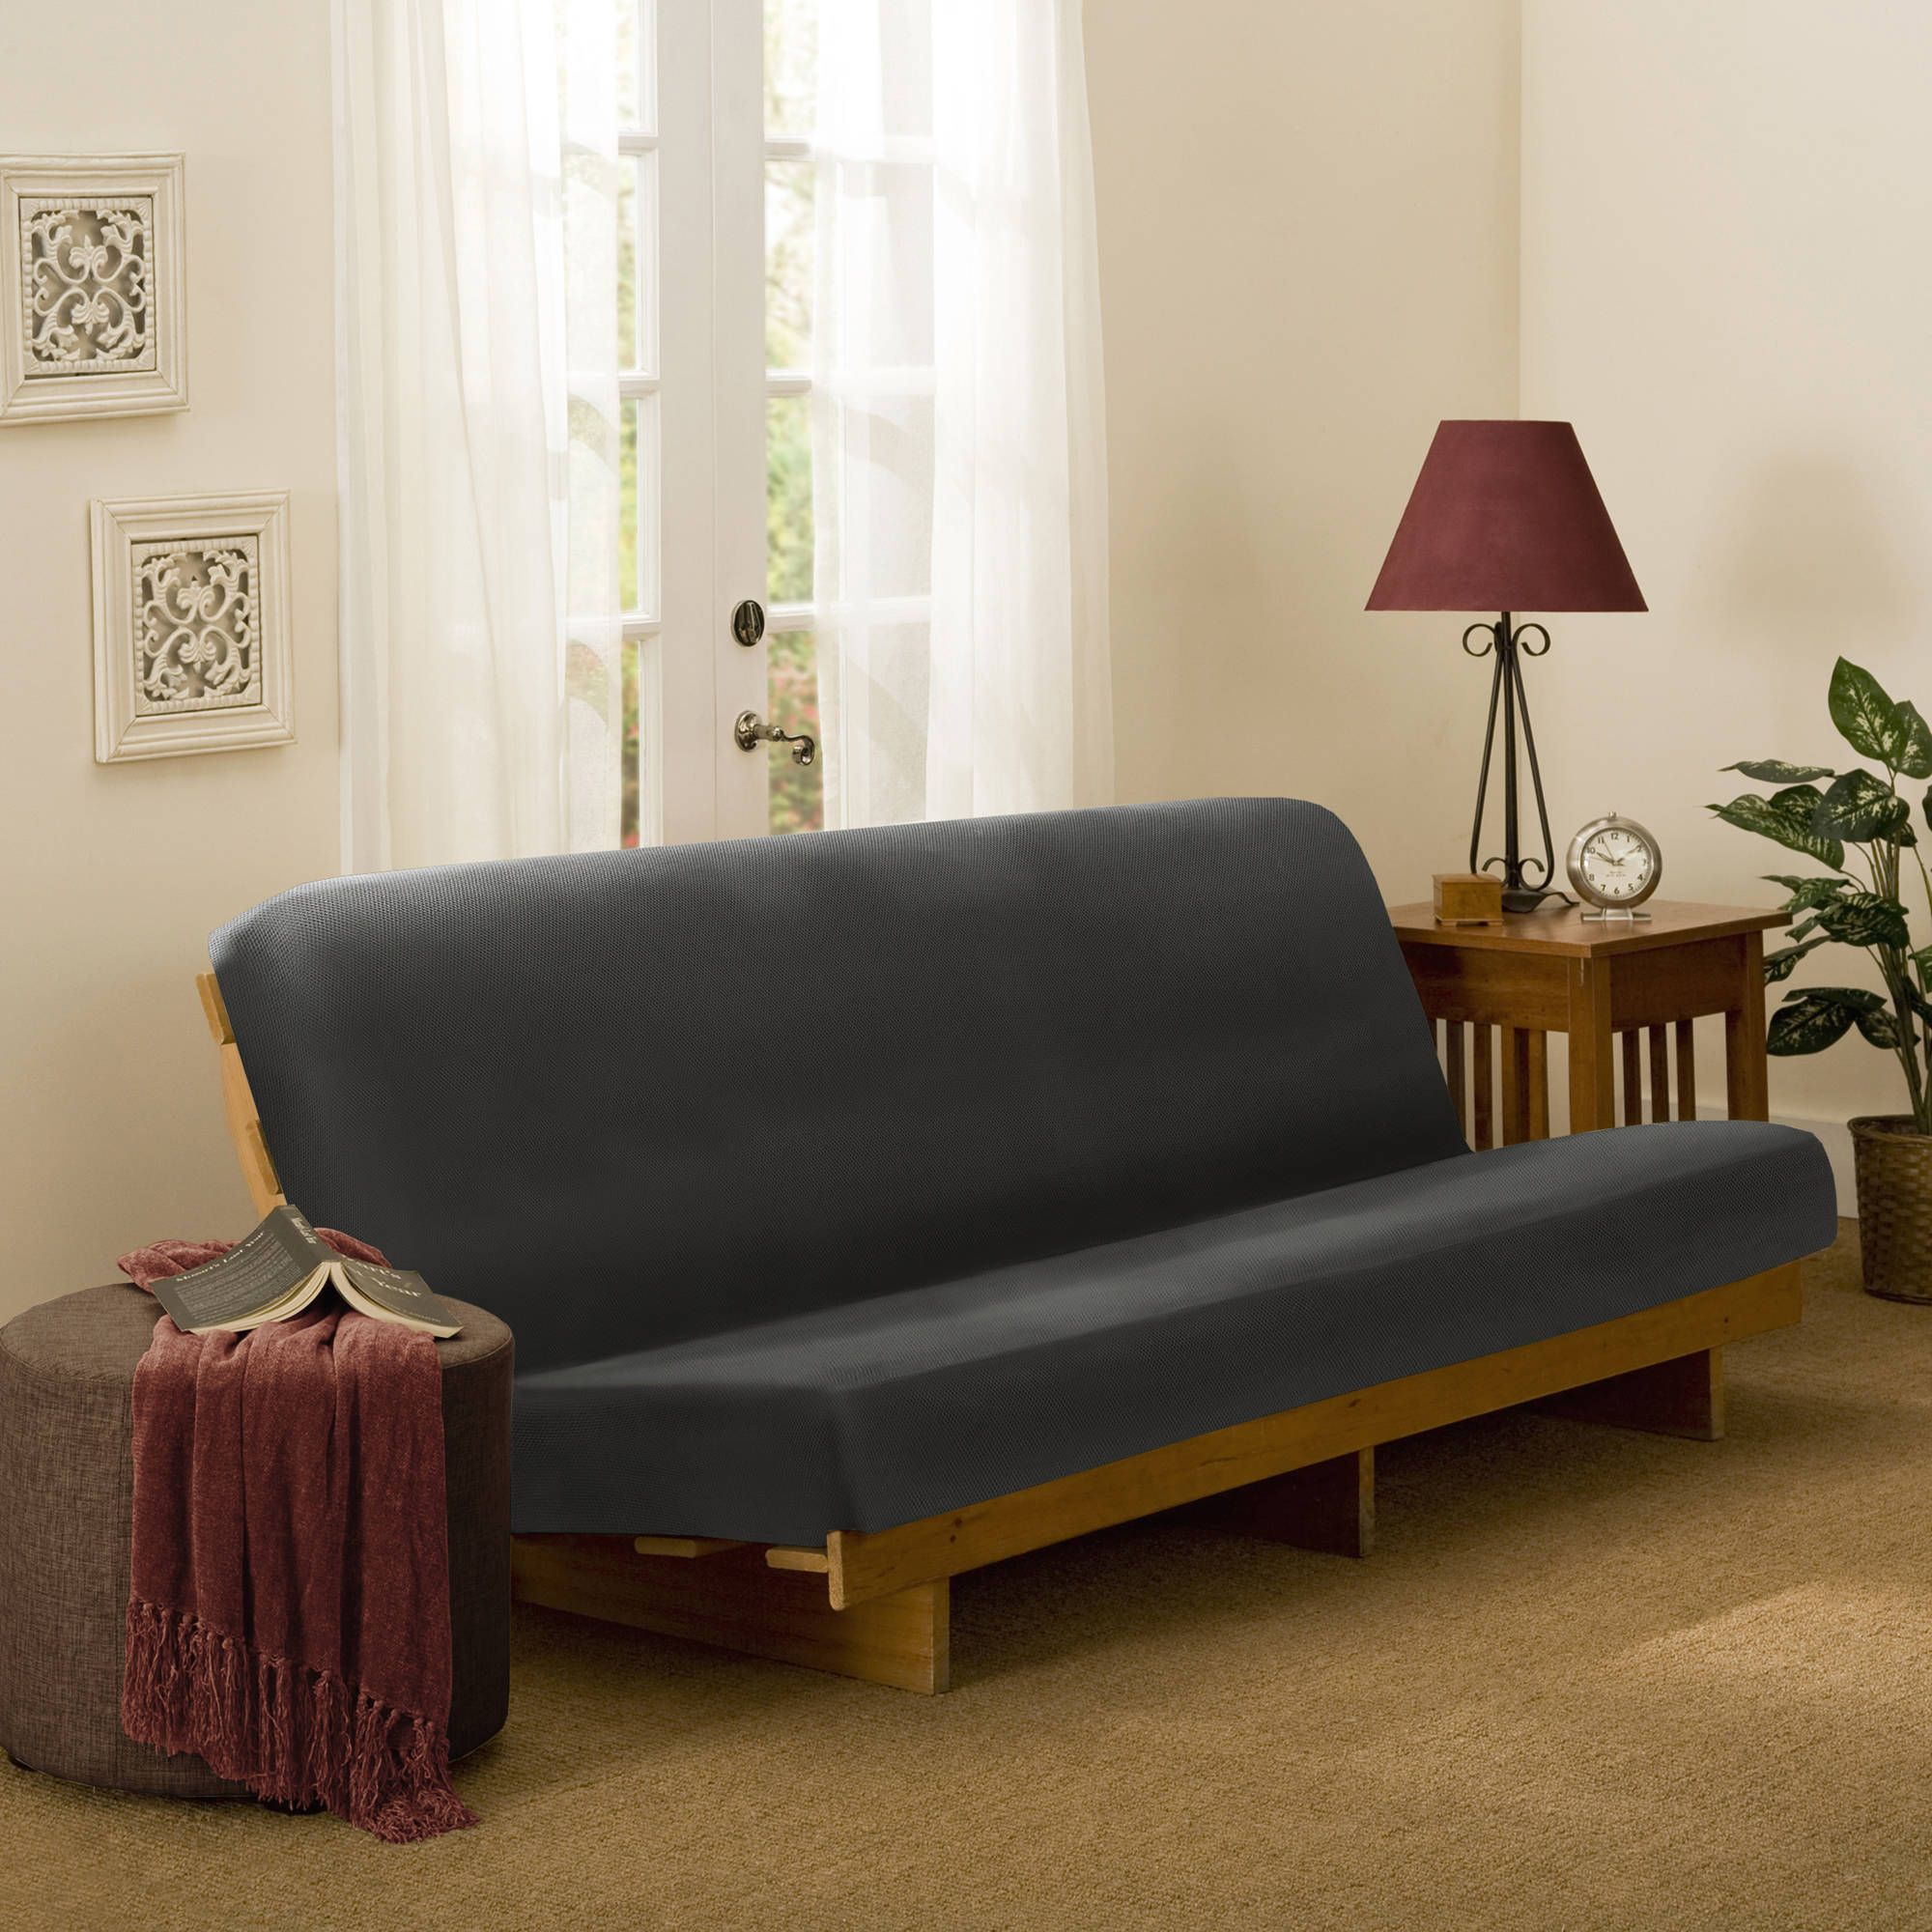 Maytex 1 Piece Stretch Pixel Futon Cover